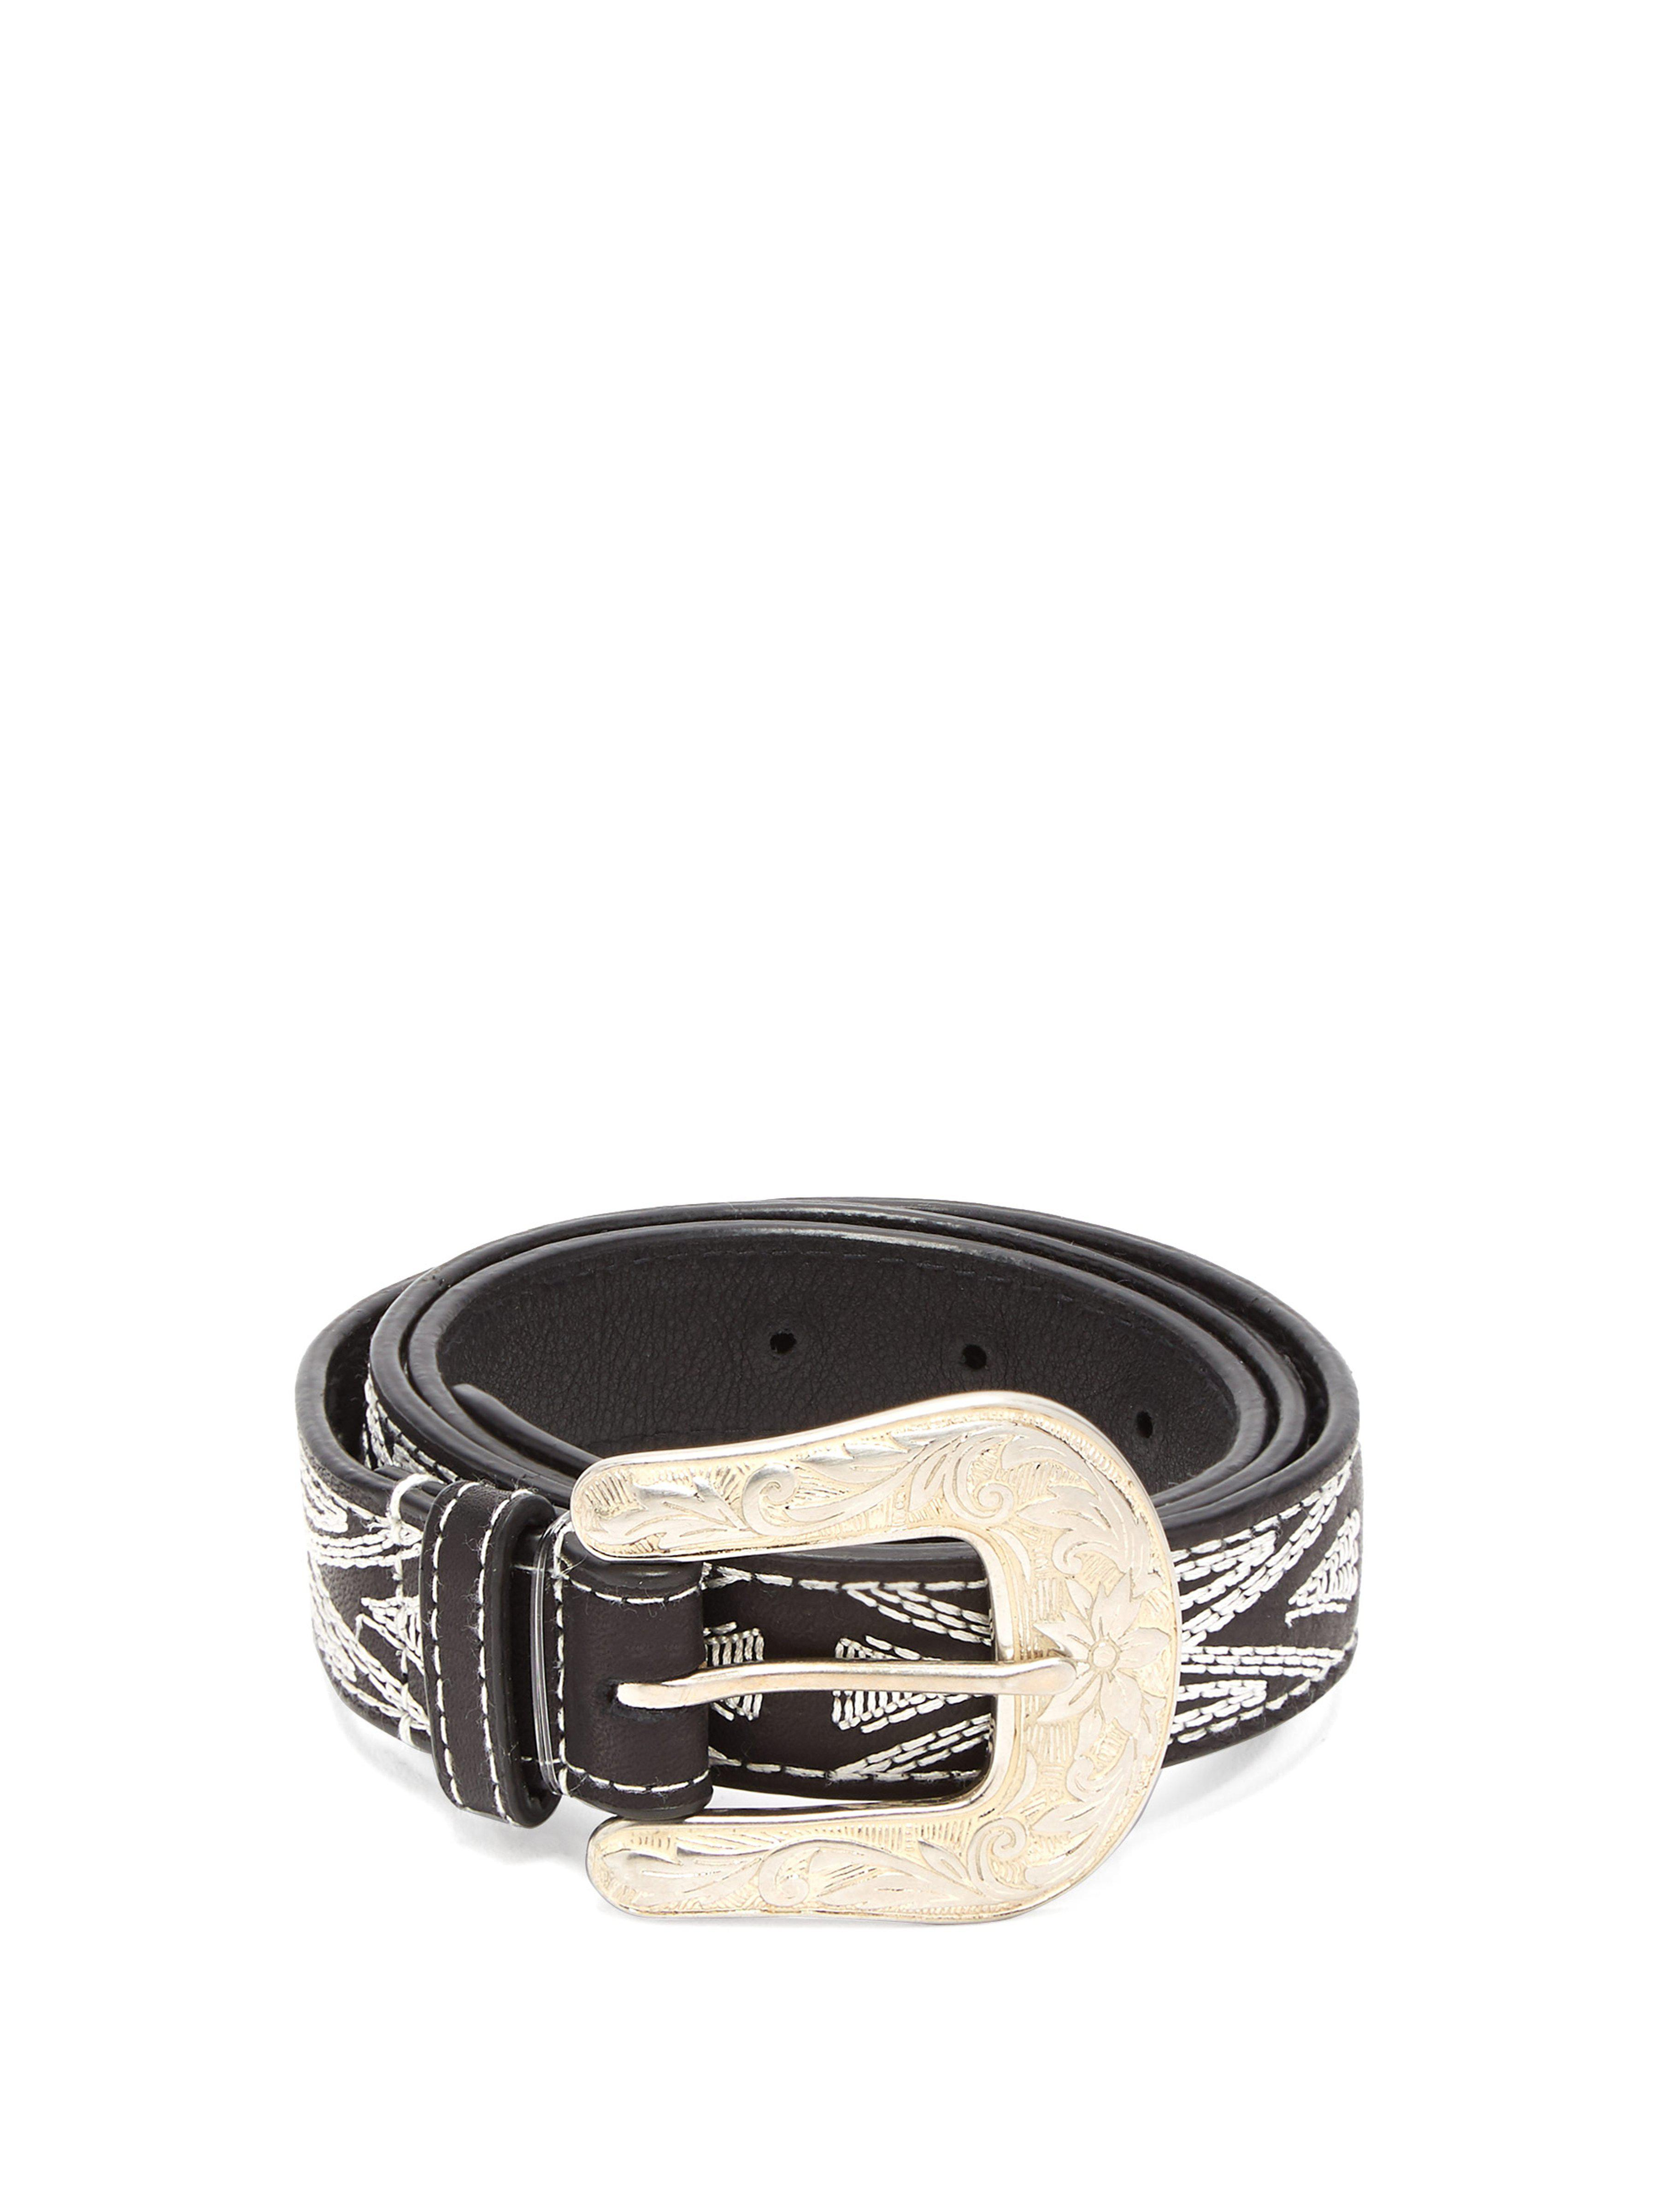 4508dabf3d67 Isabel Marant Tety Topstitched Leather Belt in Black - Lyst